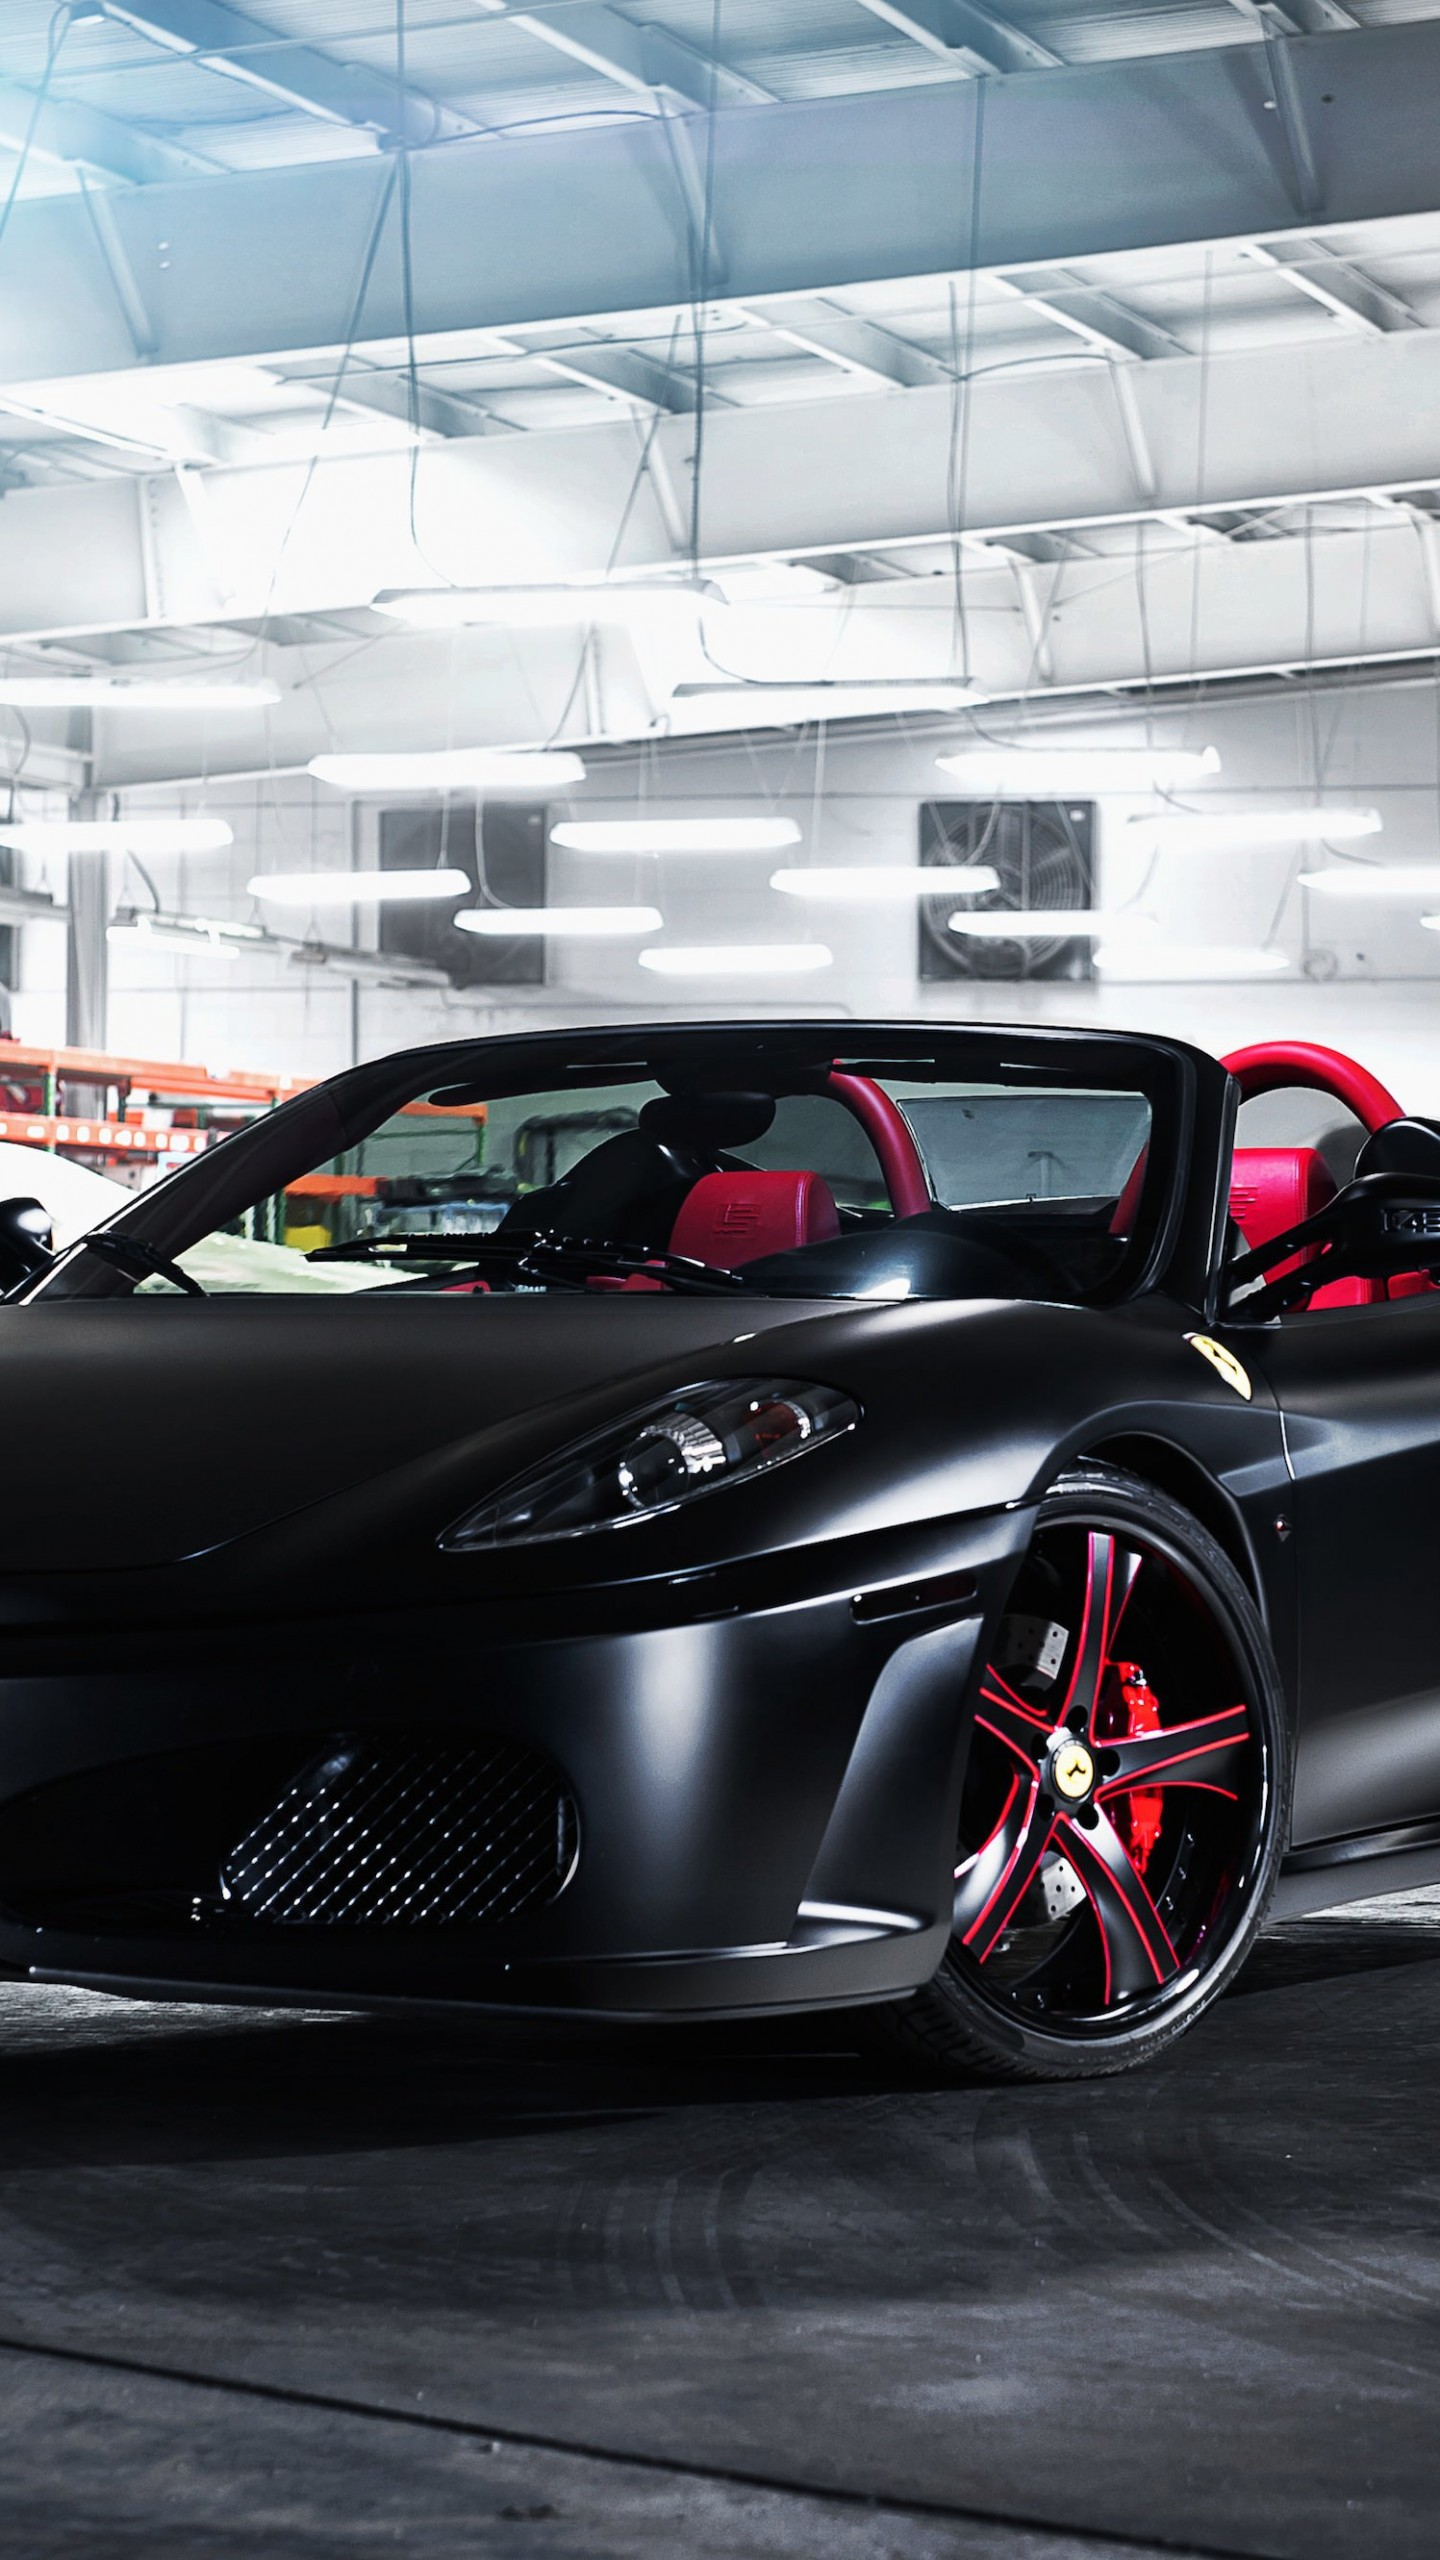 Matte Black Ferrari F430 on Savini Wheels Wallpaper for LG G3